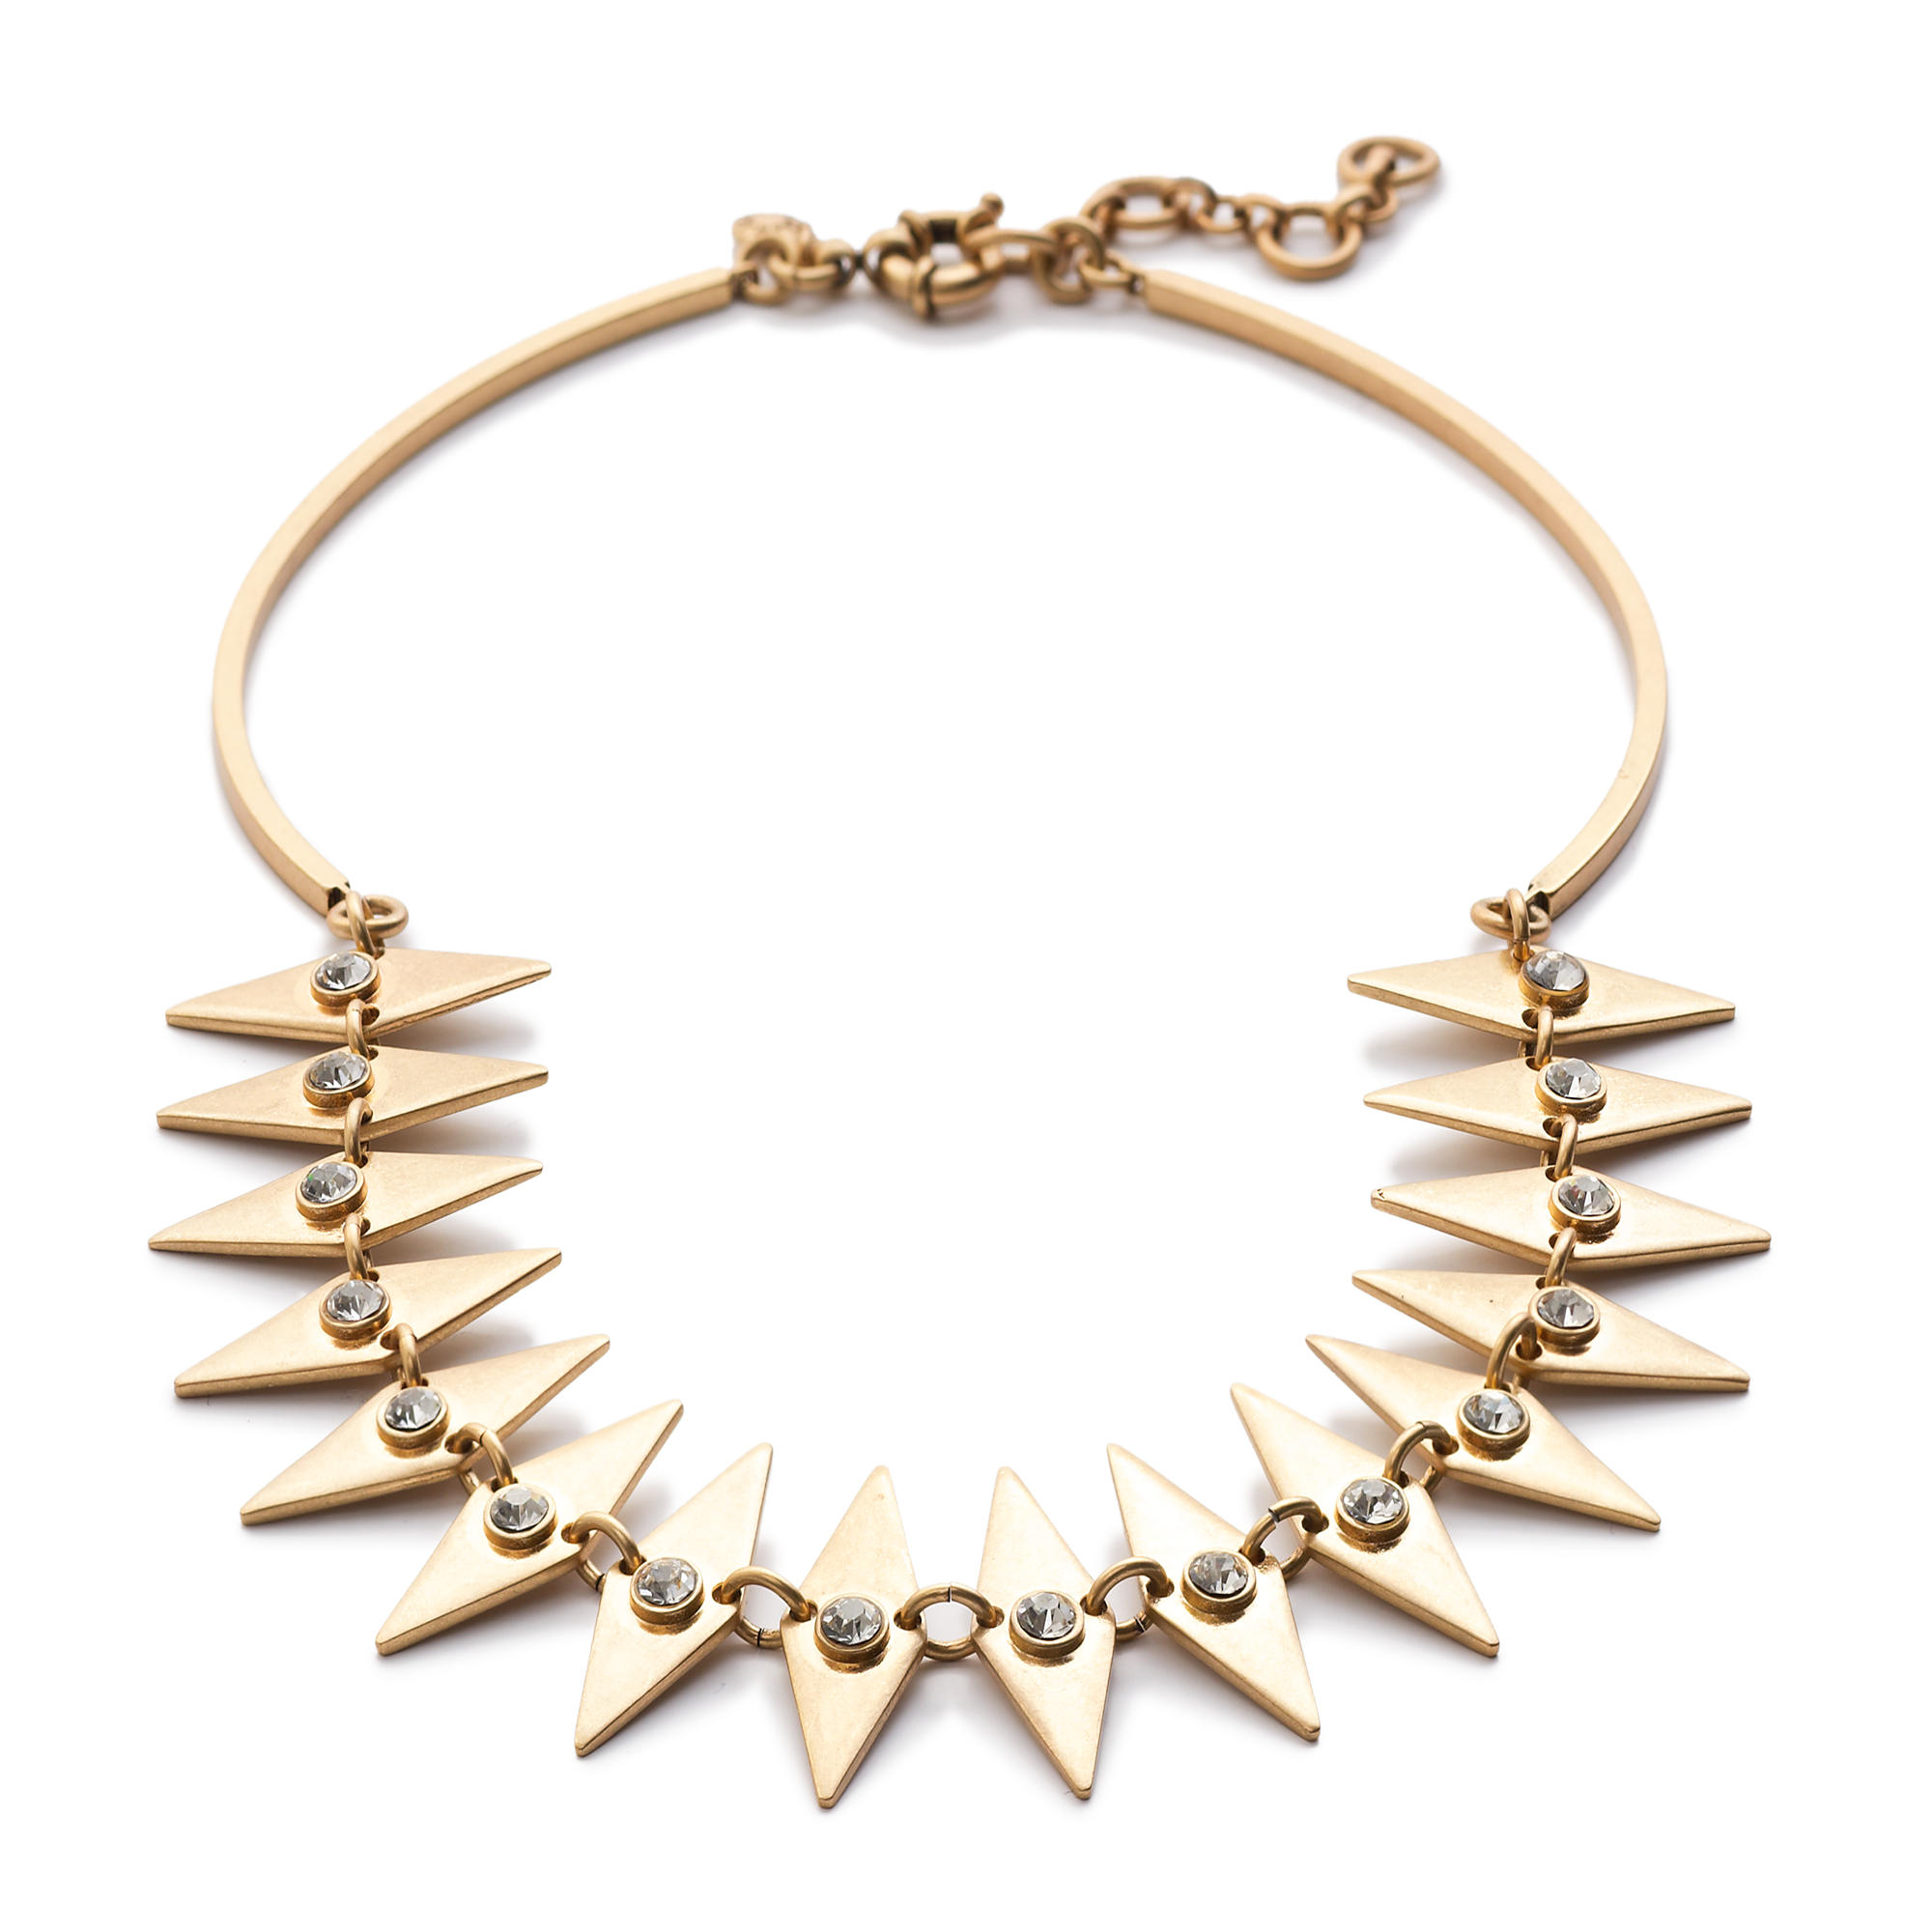 Crystal diamond collar necklace j crew for J crew jewelry 2015